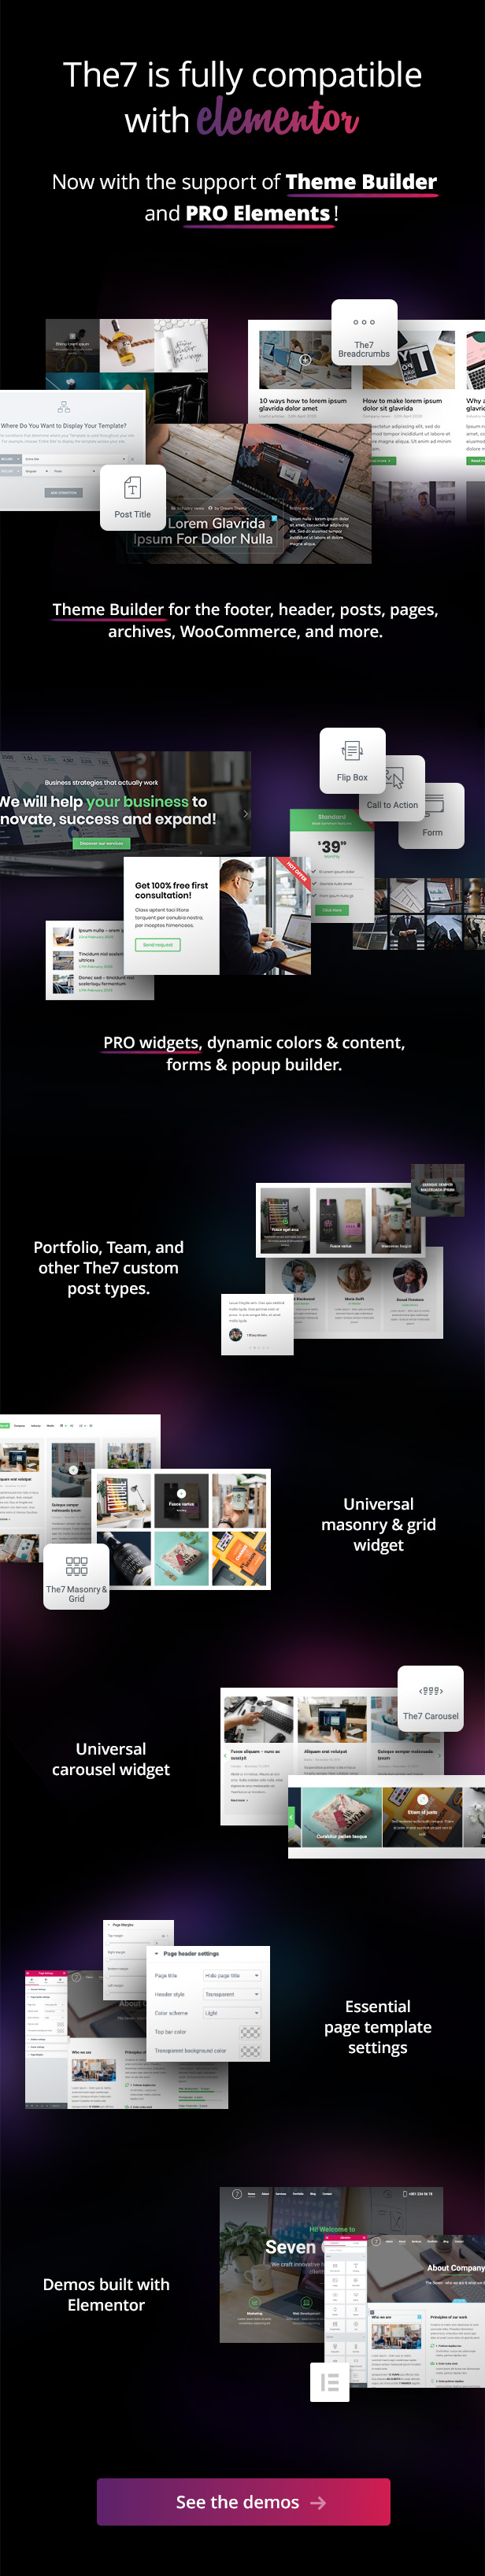 the7 elementor 01.06.20 - The7 — Multi-Purpose Website Building Toolkit for WordPress